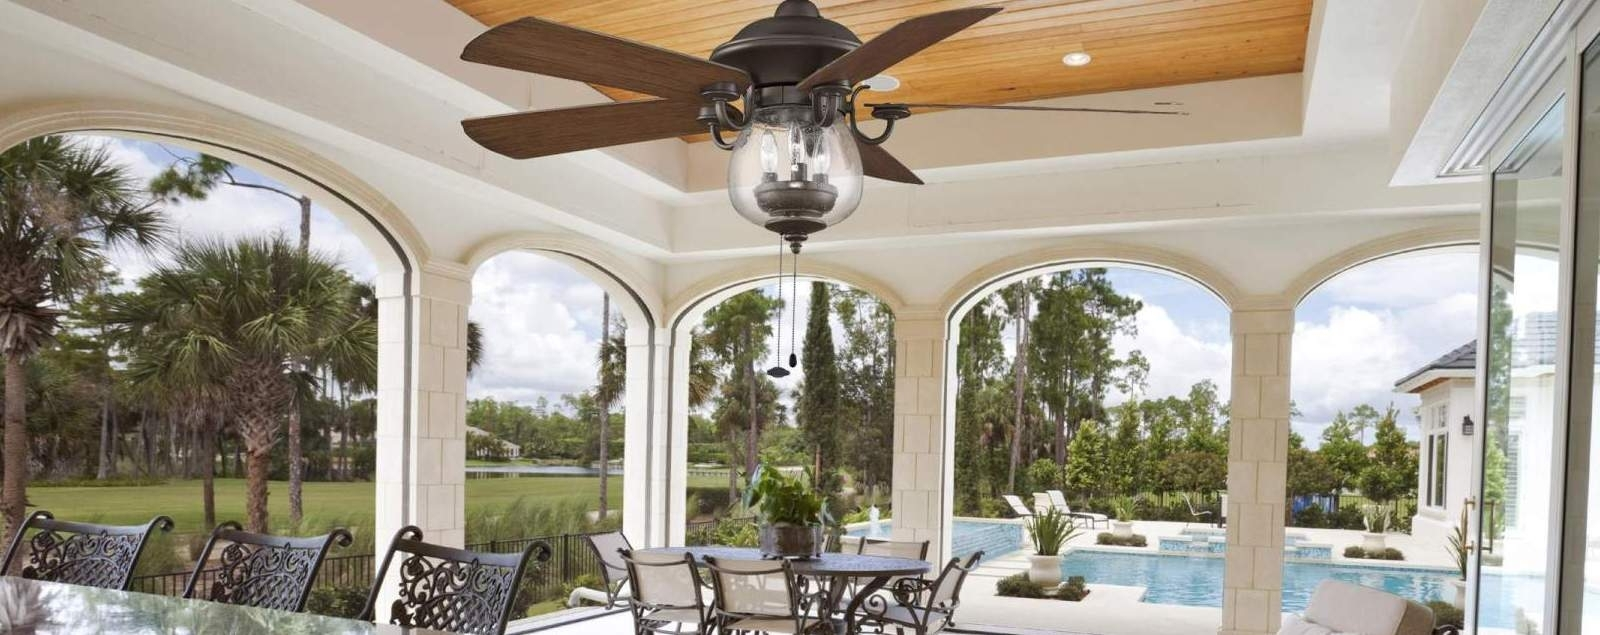 Preferred Outdoor Ceiling Fans – Choose Wet Rated Or Damp Rated For Your Space! Throughout Outdoor Ceiling Fans With Wet Rated Lights (View 7 of 20)